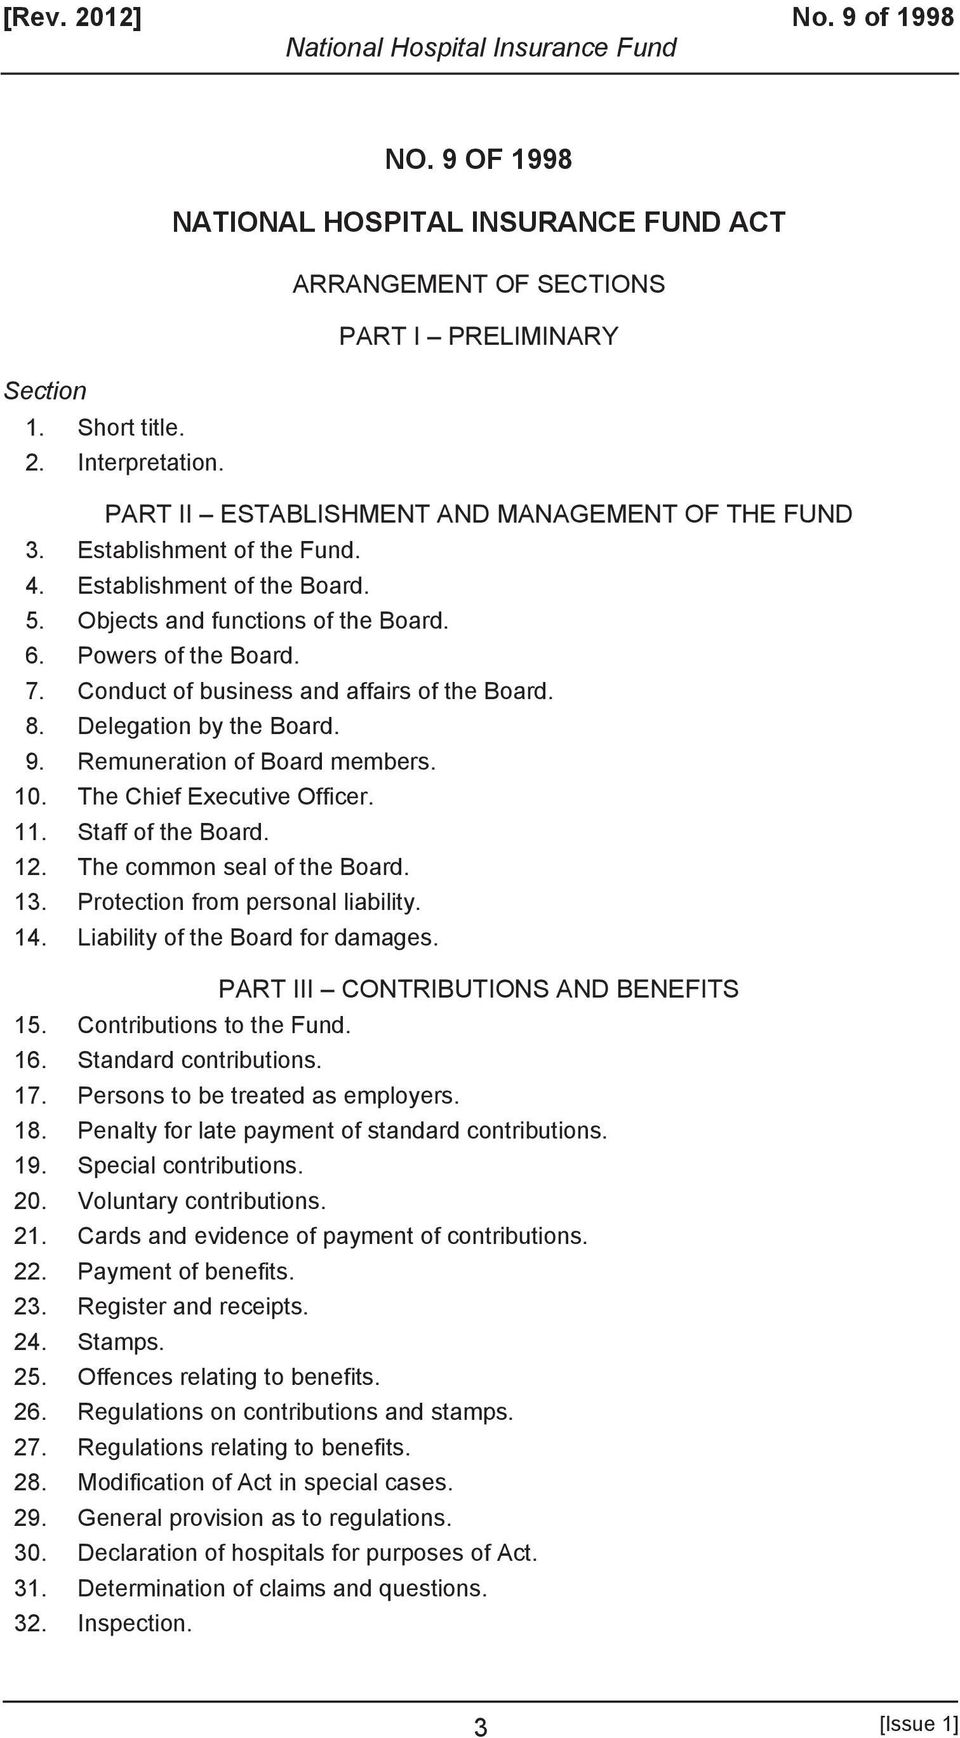 Conduct of business and affairs of the Board. 8. Delegation by the Board. 9. Remuneration of Board members. 10. The Chief Executive Officer. 11. Staff of the Board. 12. The common seal of the Board.